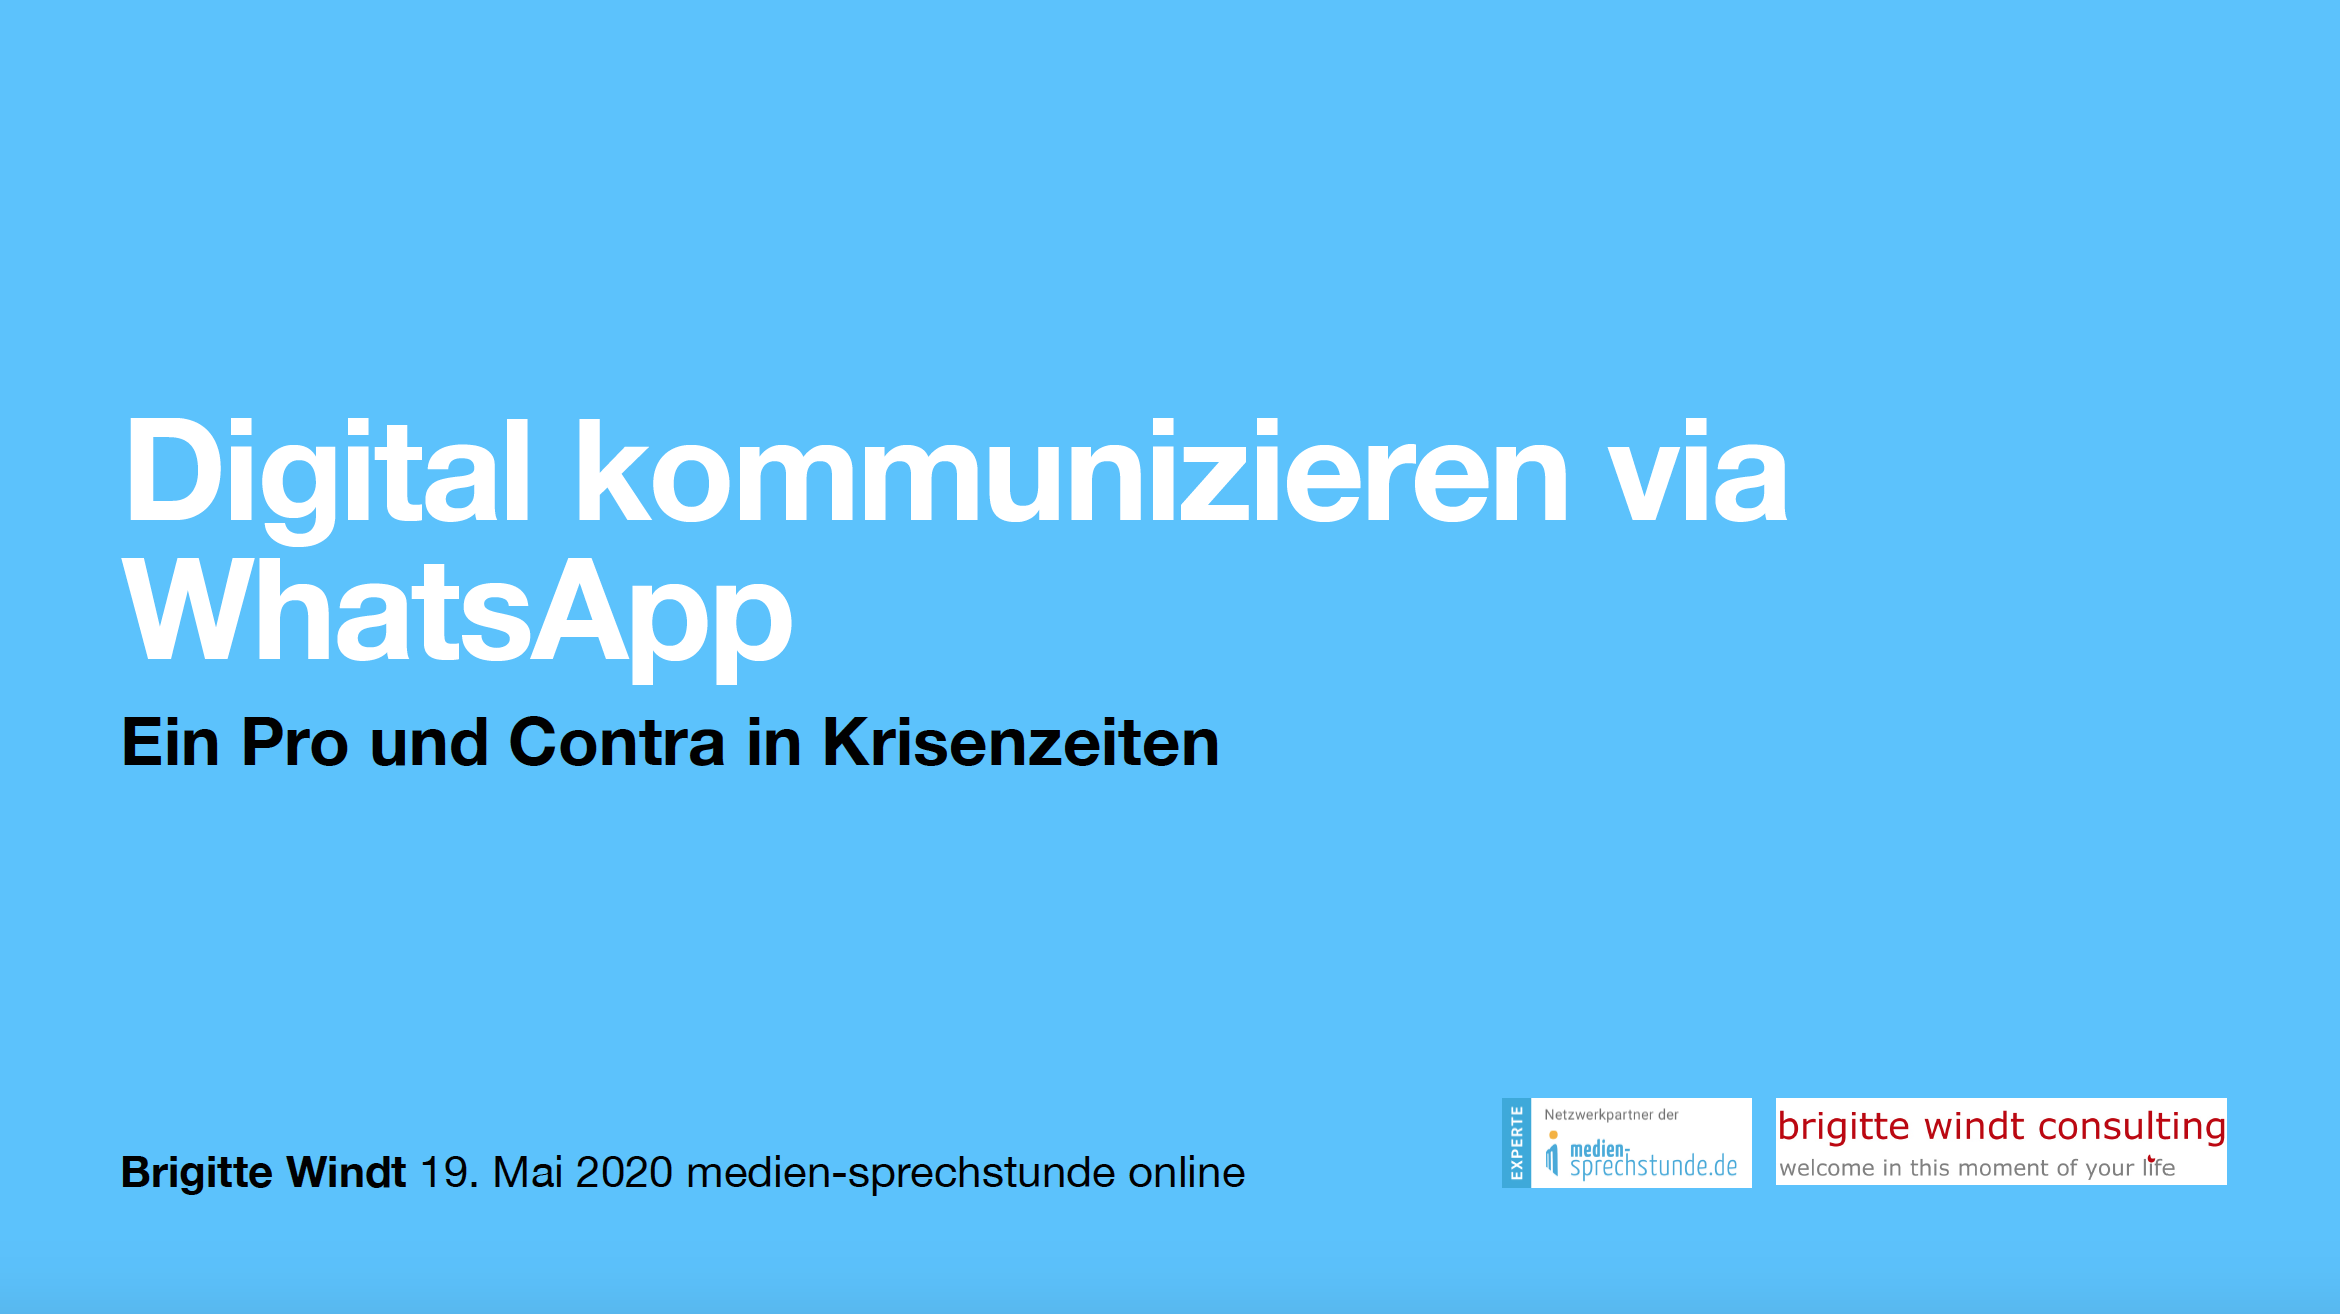 Präsentation: Digital kommunizieren via WhatsApp von Brigitte Windt